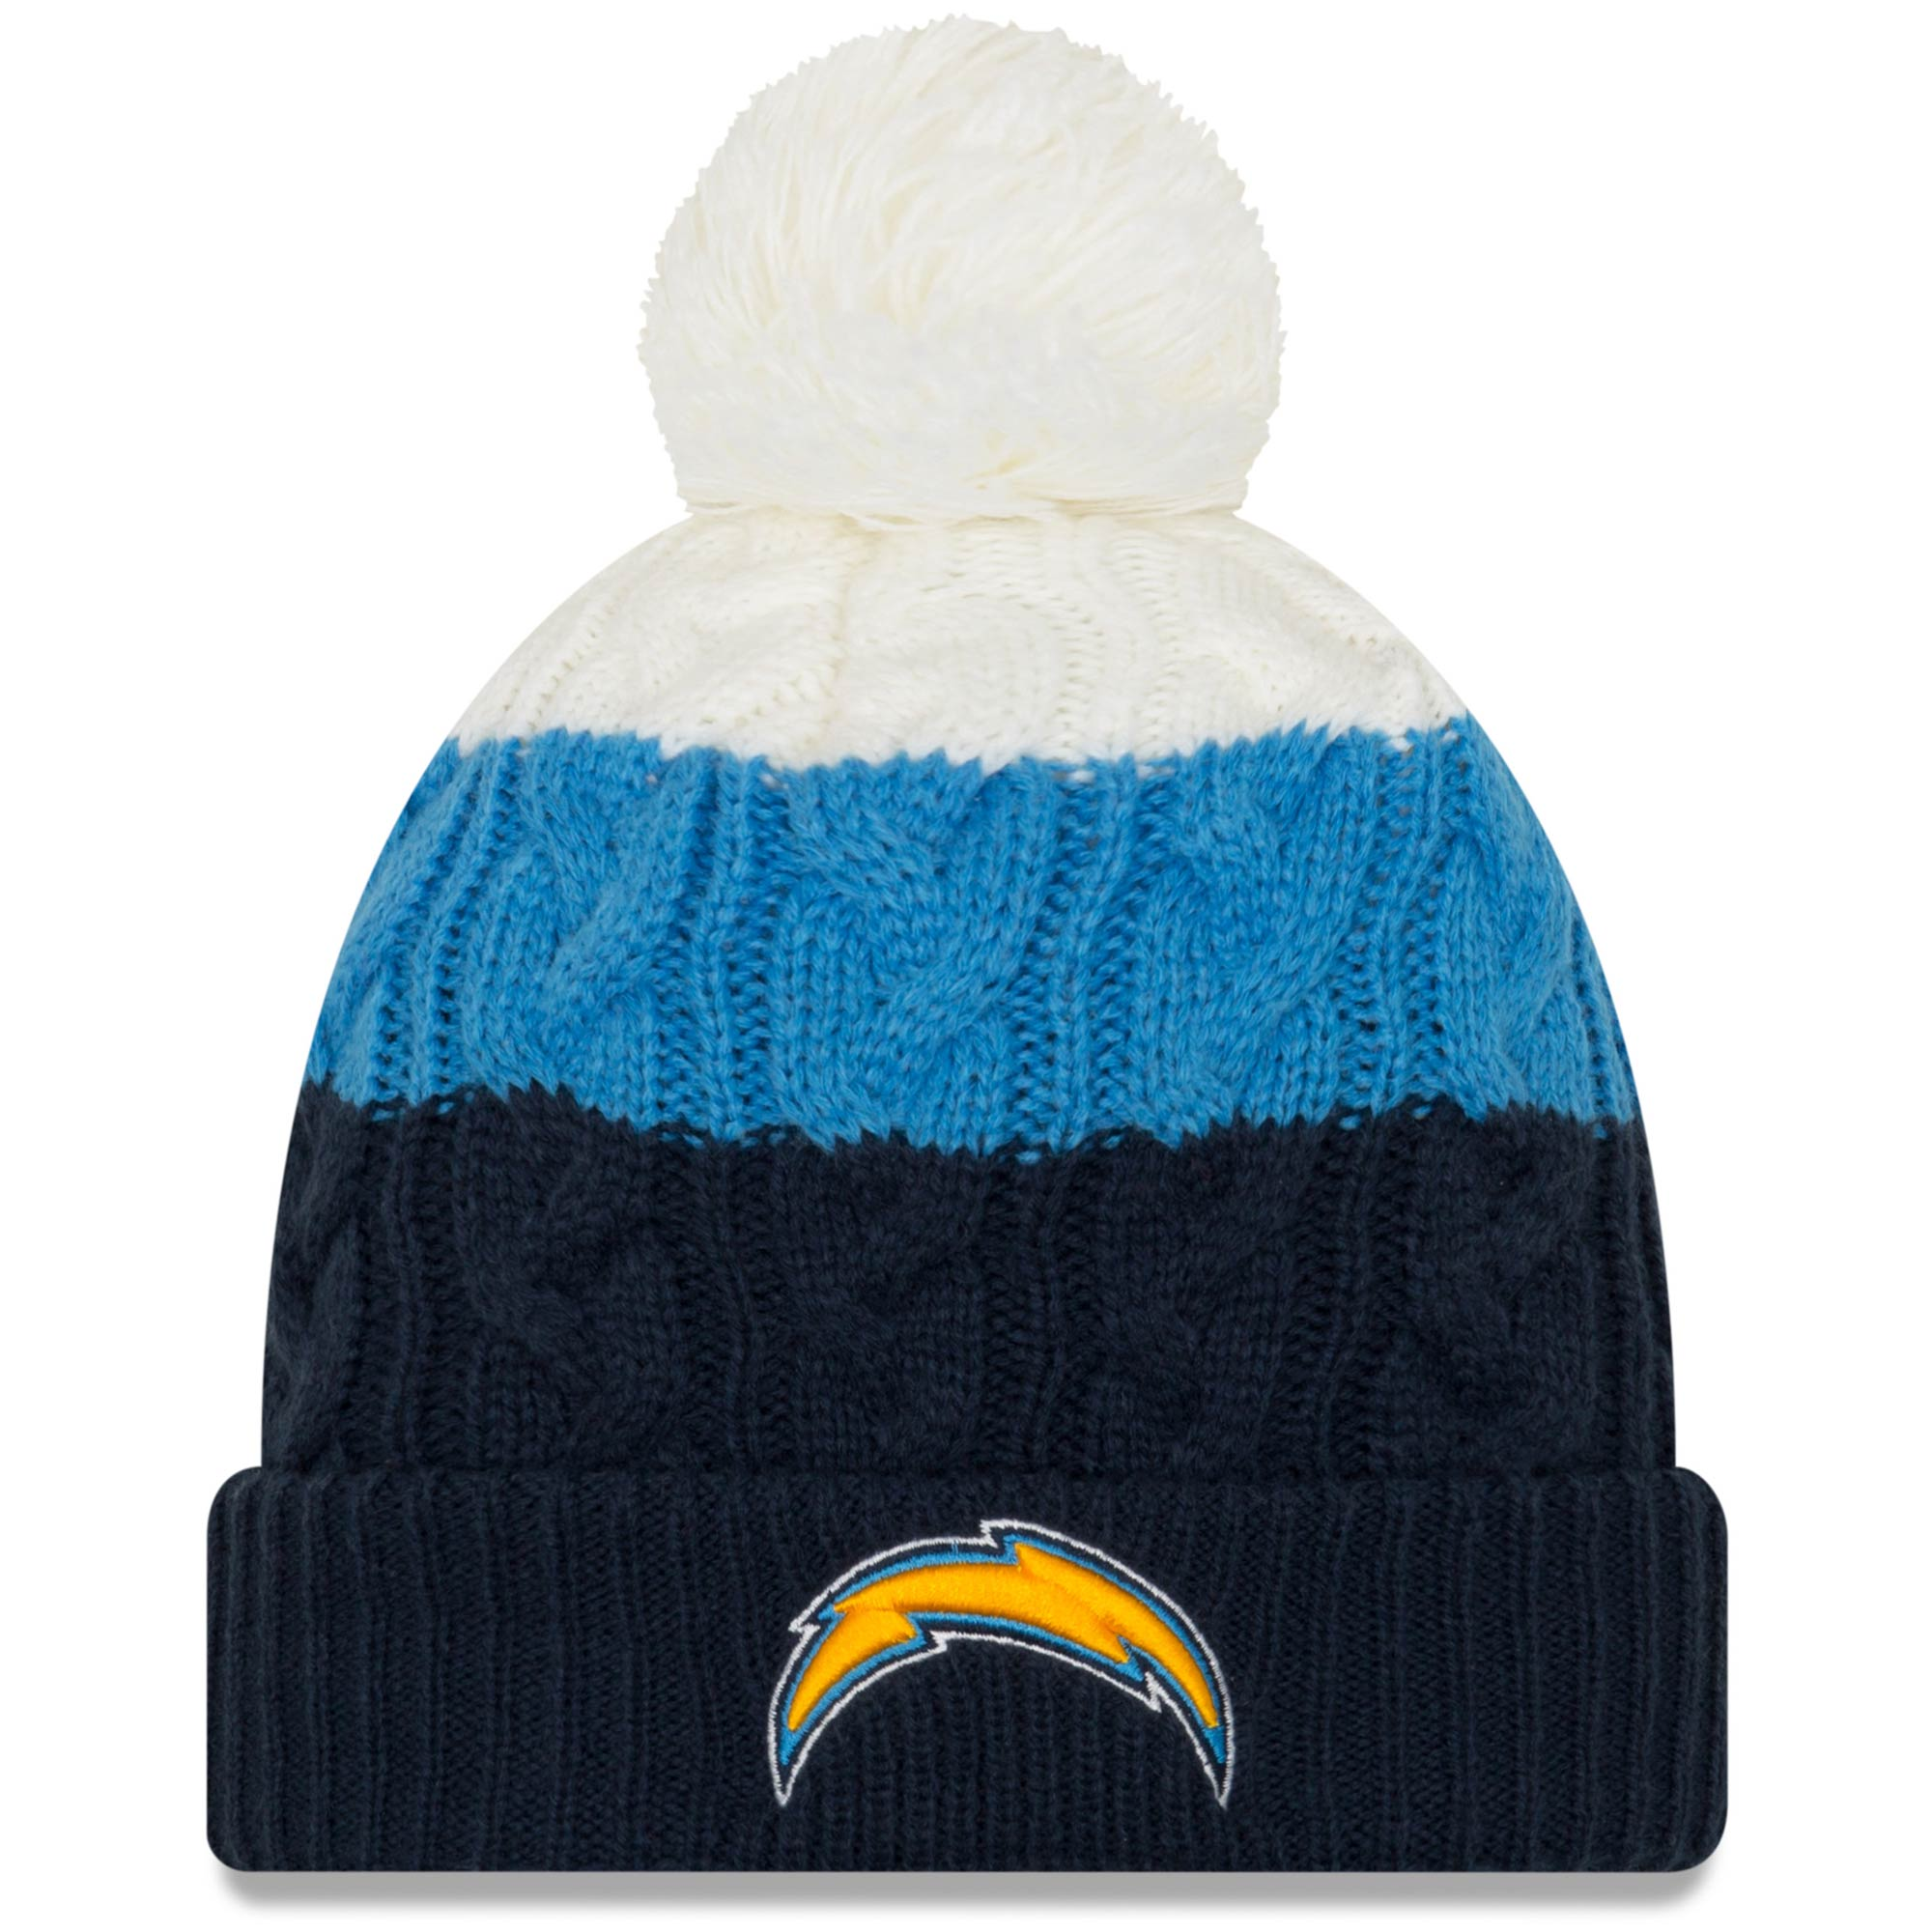 Los Angeles Chargers New Era Women's Layered Up 2 Cuffed Knit Hat with Pom - White/Navy